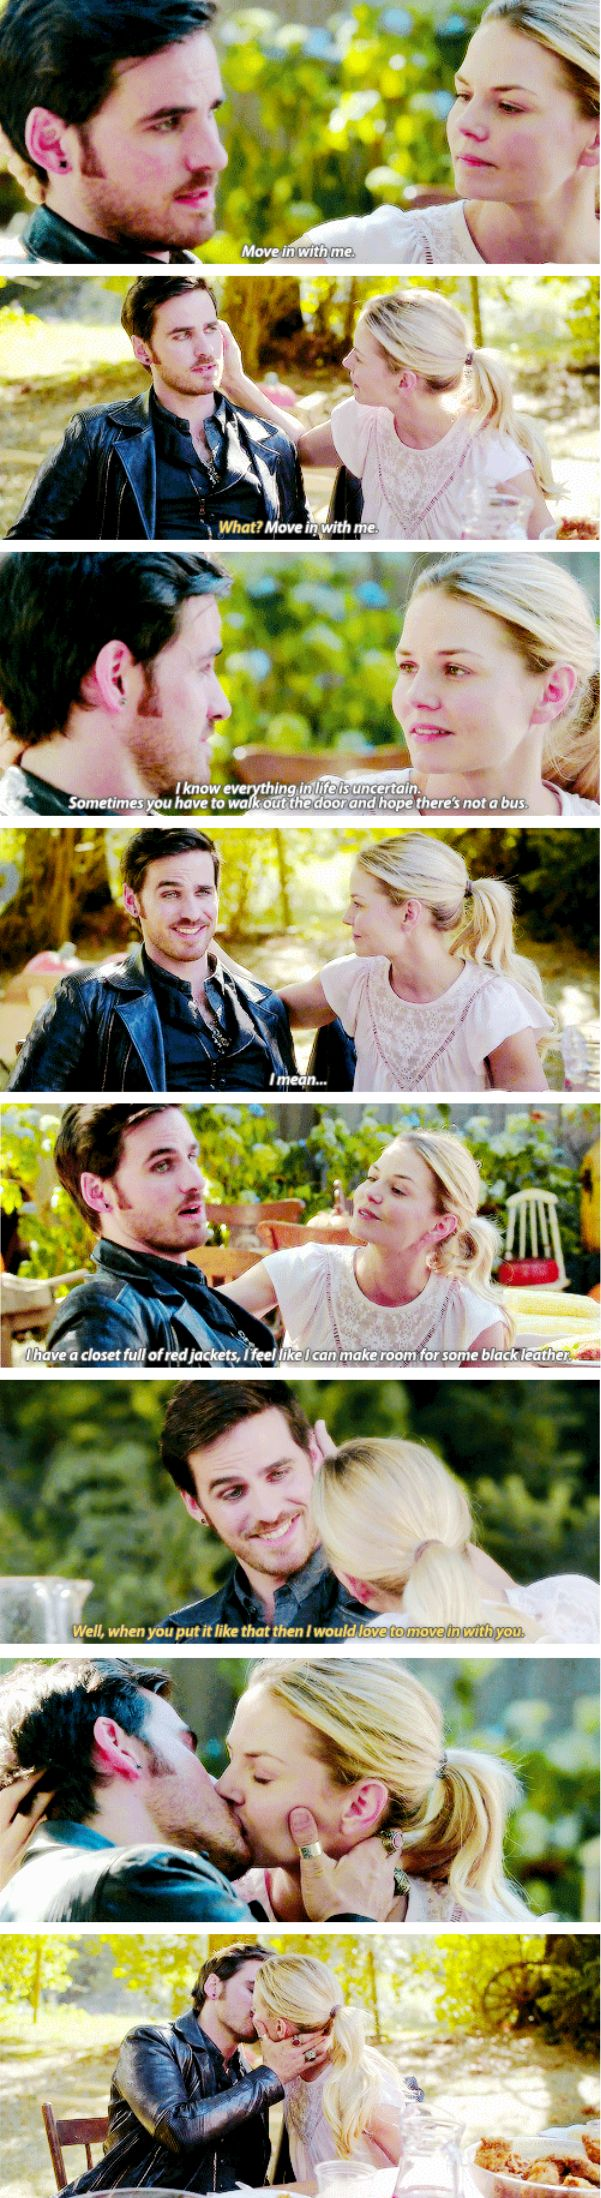 "Emma Swan and Killian Jones - 6 * 3 ""The Other Shoe"" #CaptainSwan                                                                                                                                                                                 More"